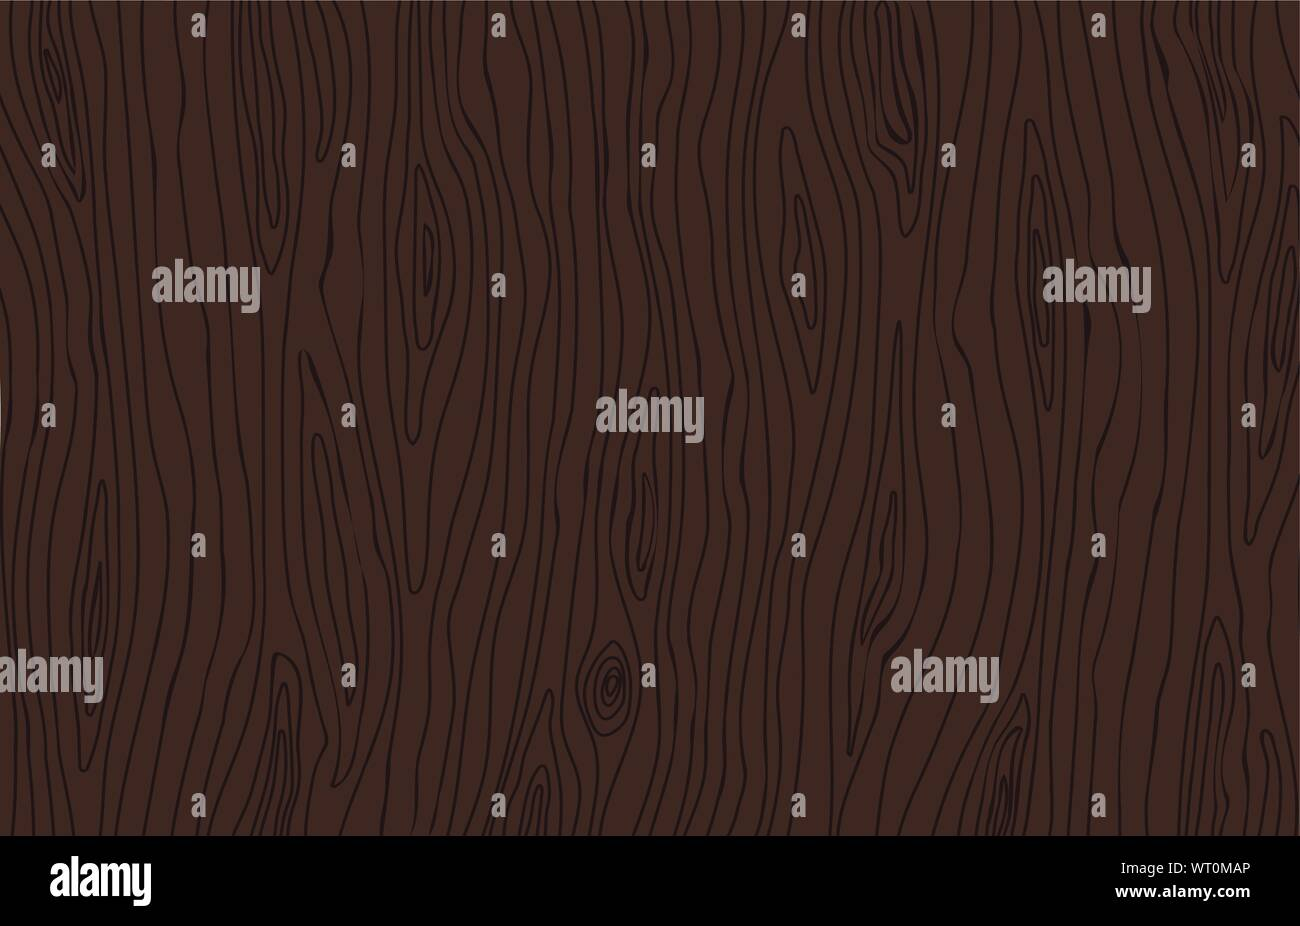 Walnut Veneer Texture High Resolution Stock Photography And Images Alamy